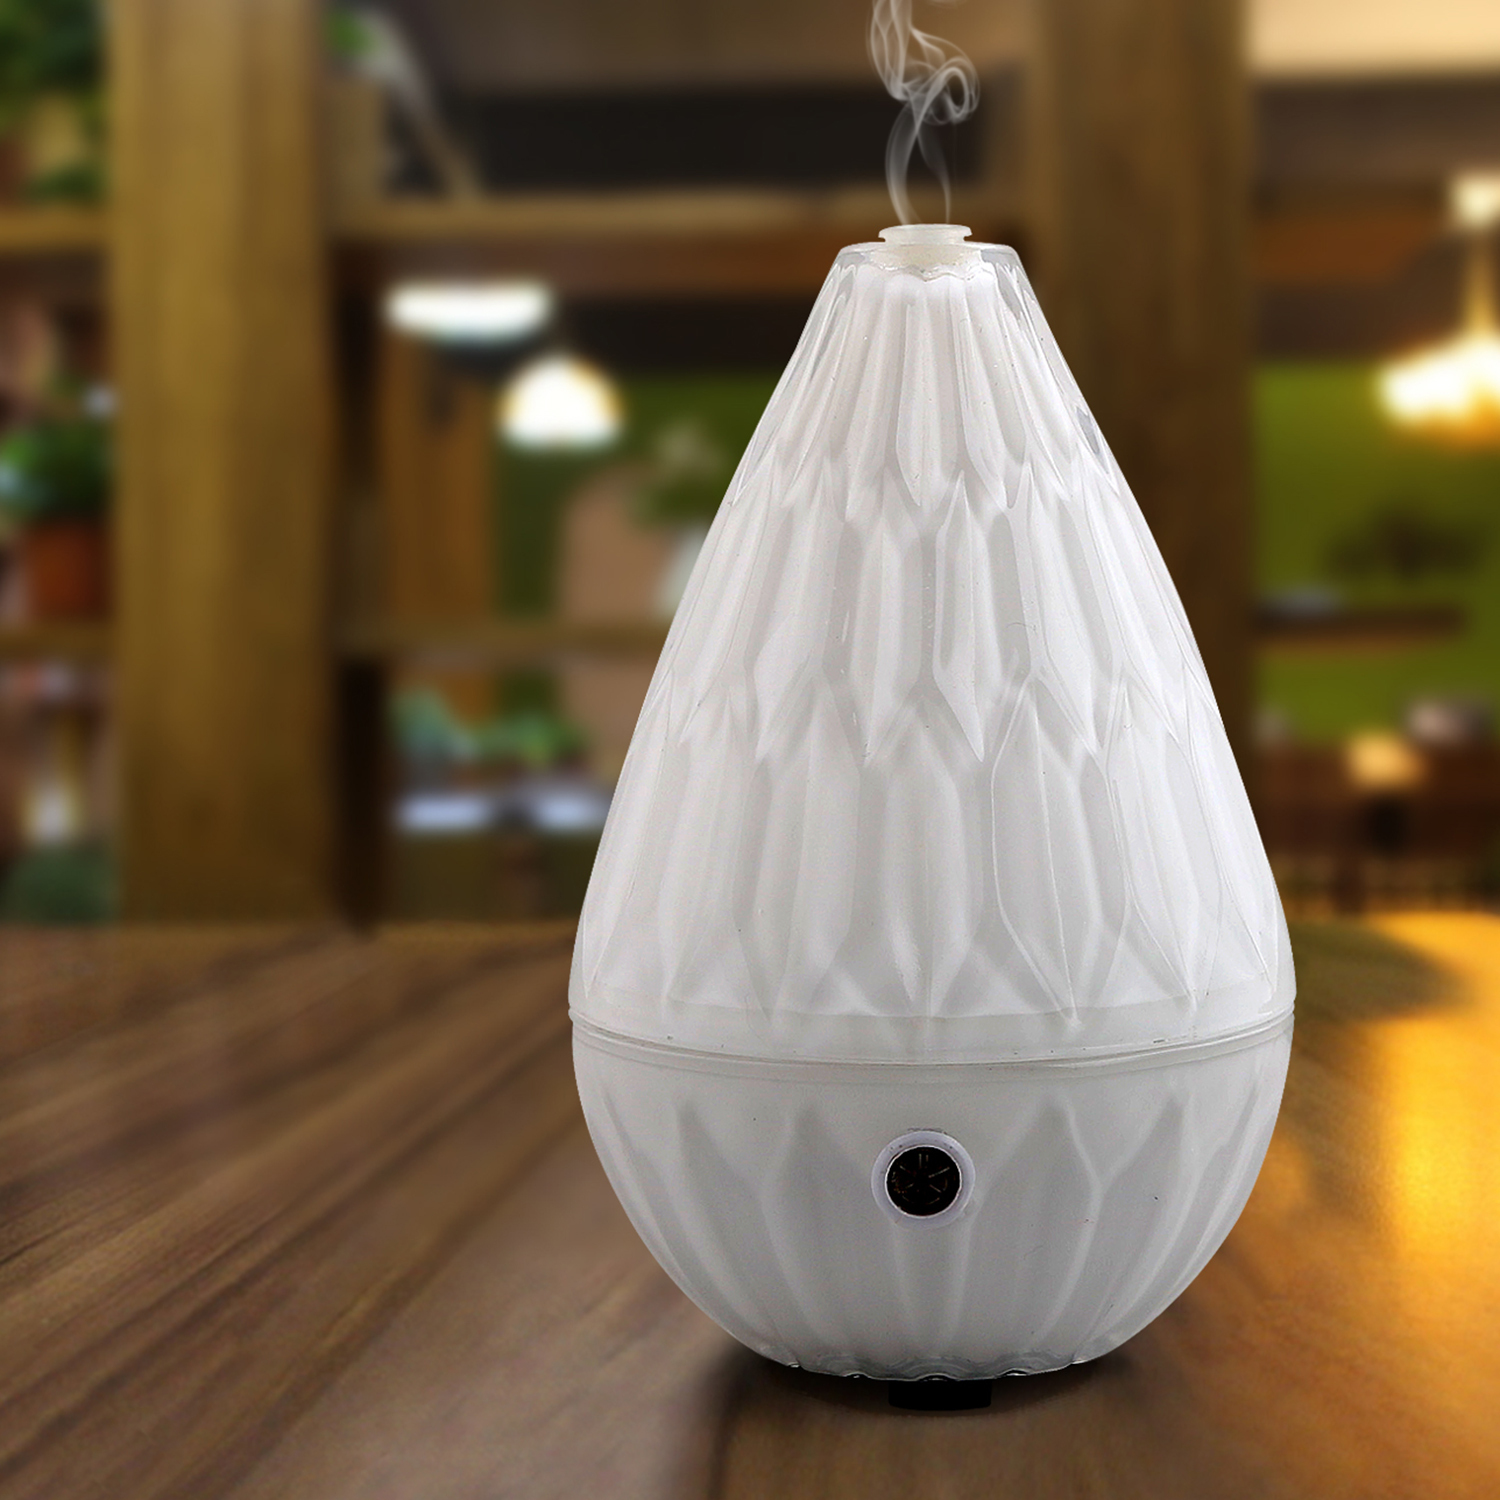 Glass Mosaic aroma diffuser essential oil diffuser